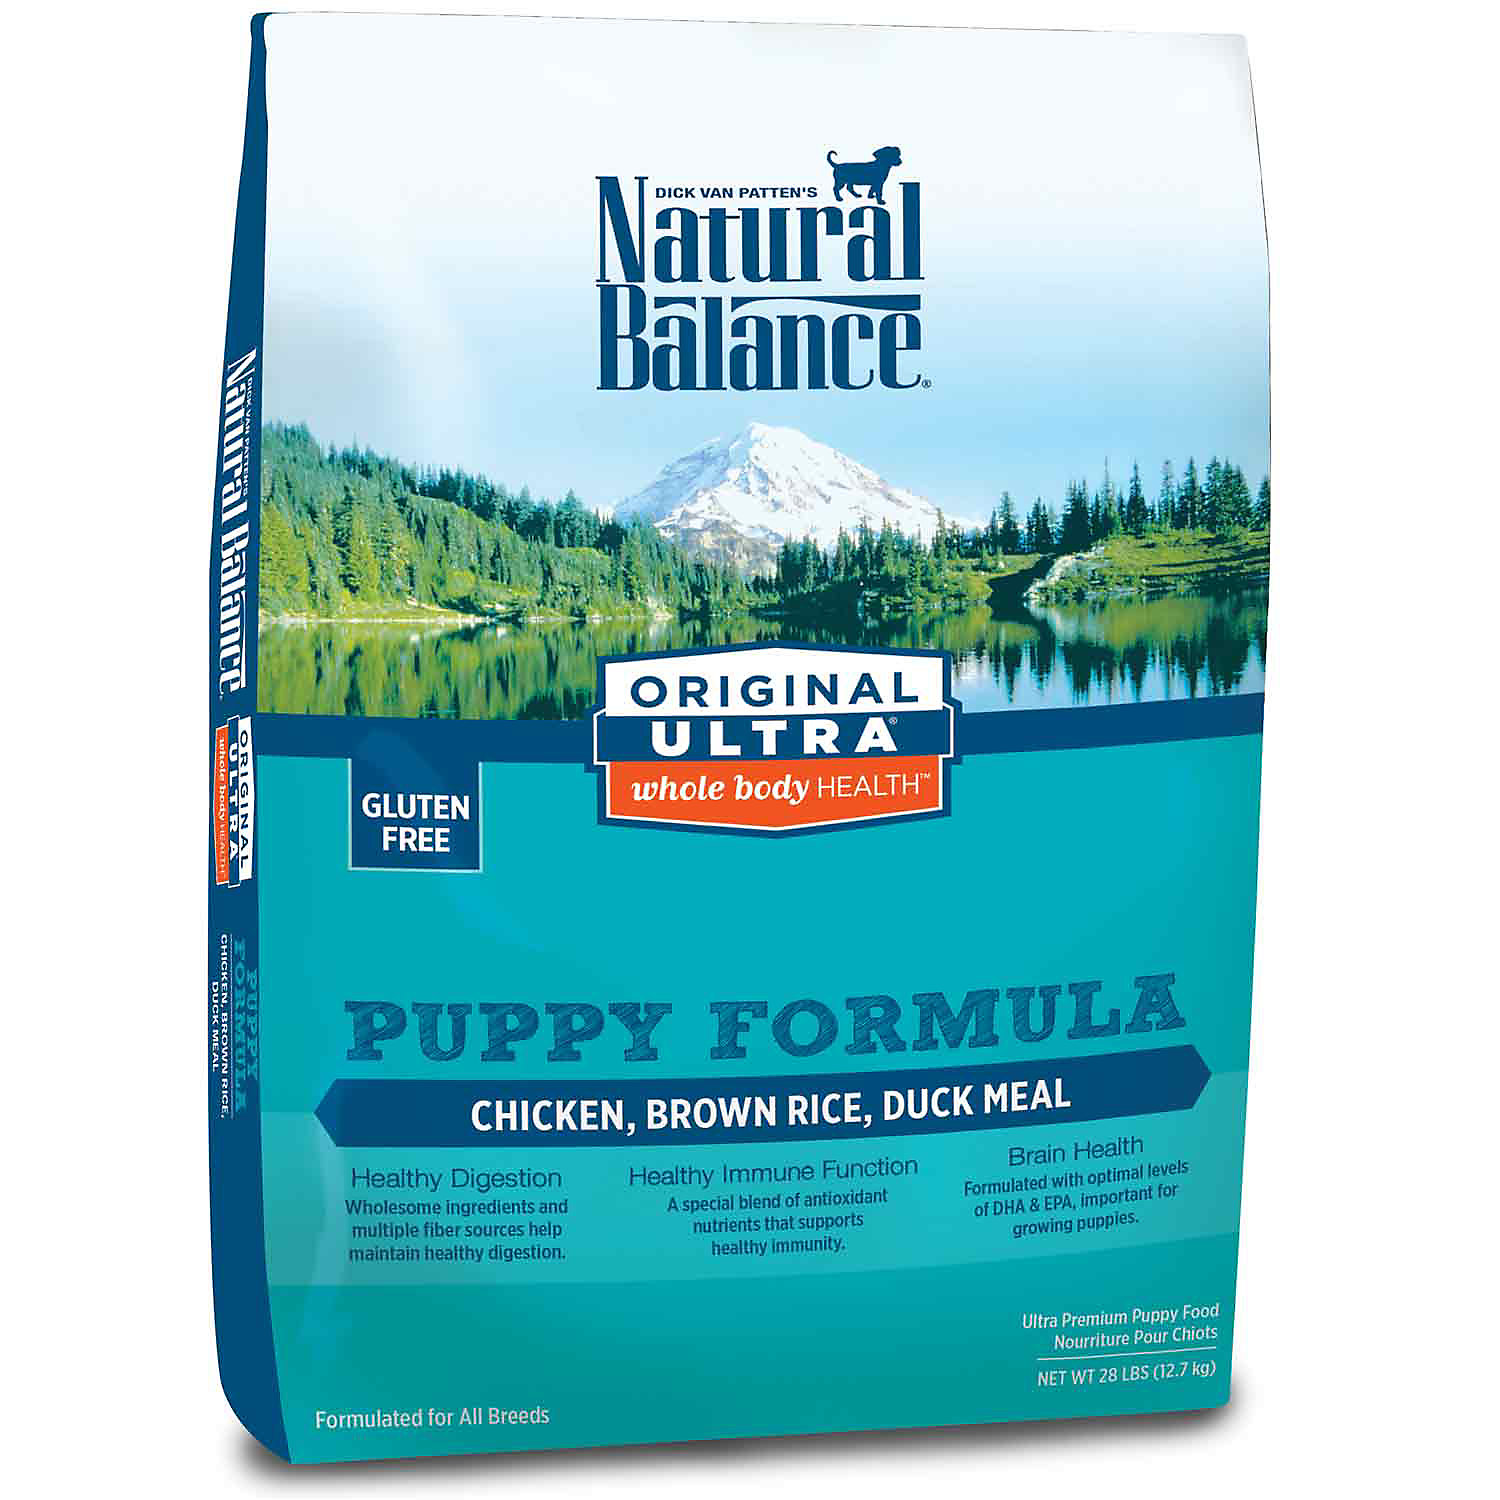 Natural Balance Original Ultra Whole Body Health Chicken Brown Rice Duck Meal Puppy Food 28 Lbs.